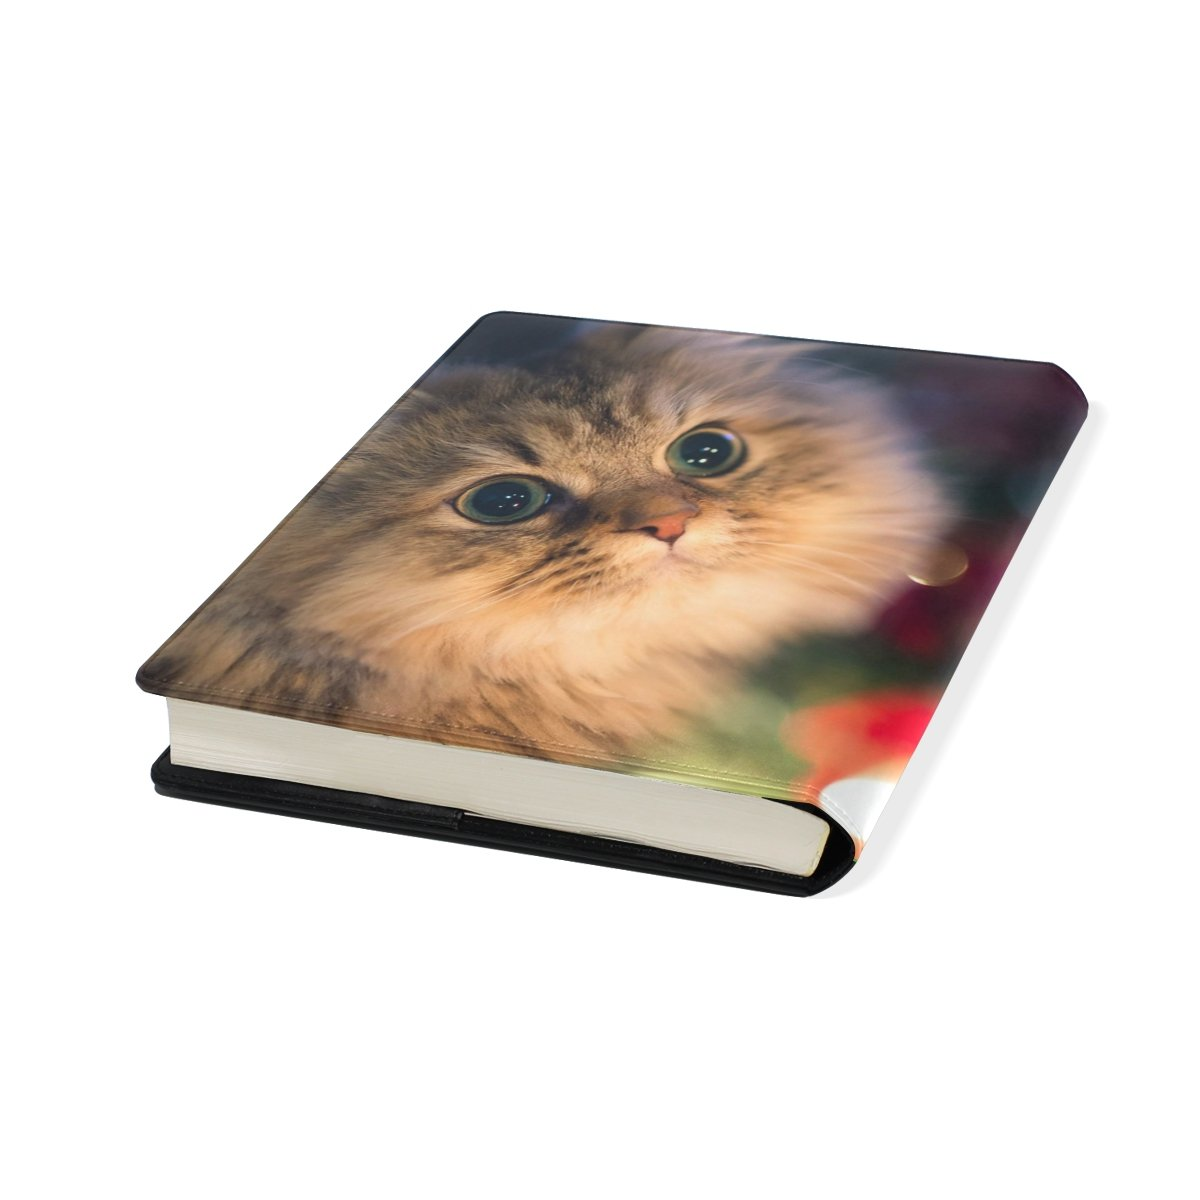 Cat Stretchable Leather Book Covers Standard Size for Student Hardcover Textbooks Fits up to 9x11-Inch for School Girls Boys Gift